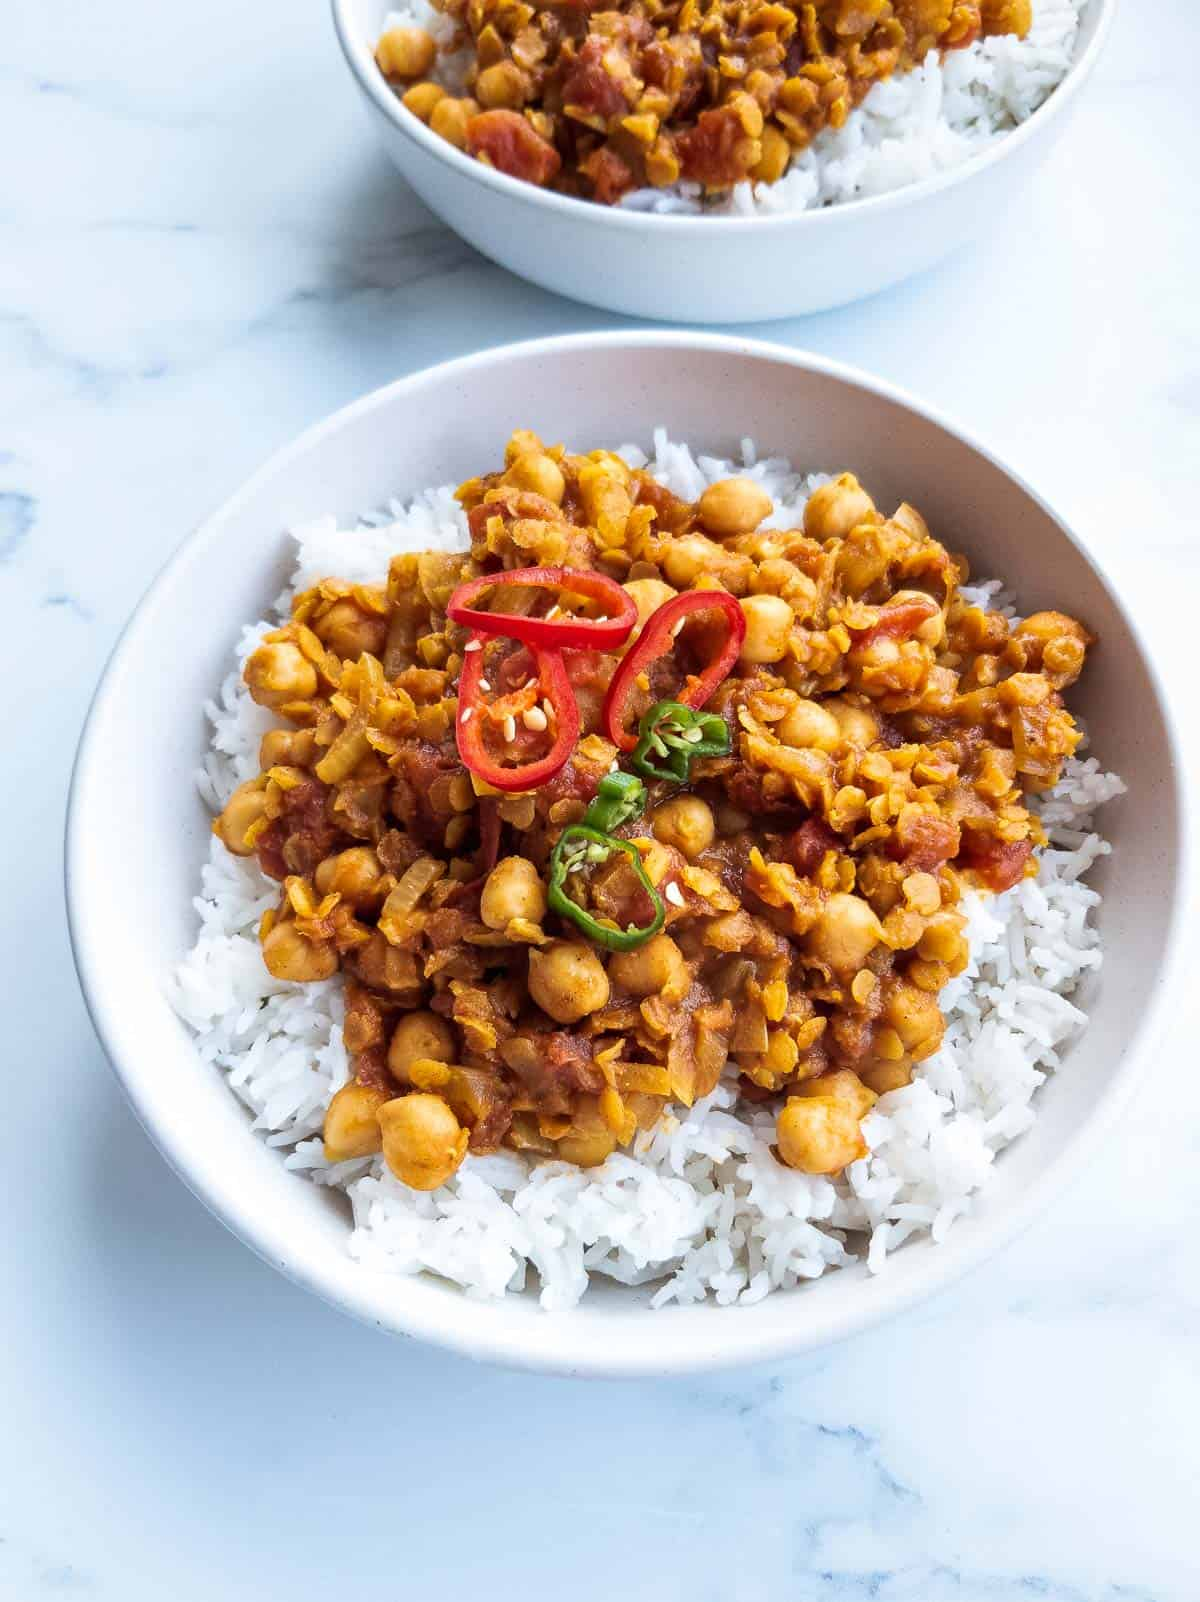 Chickpea and lentil curry over rice.